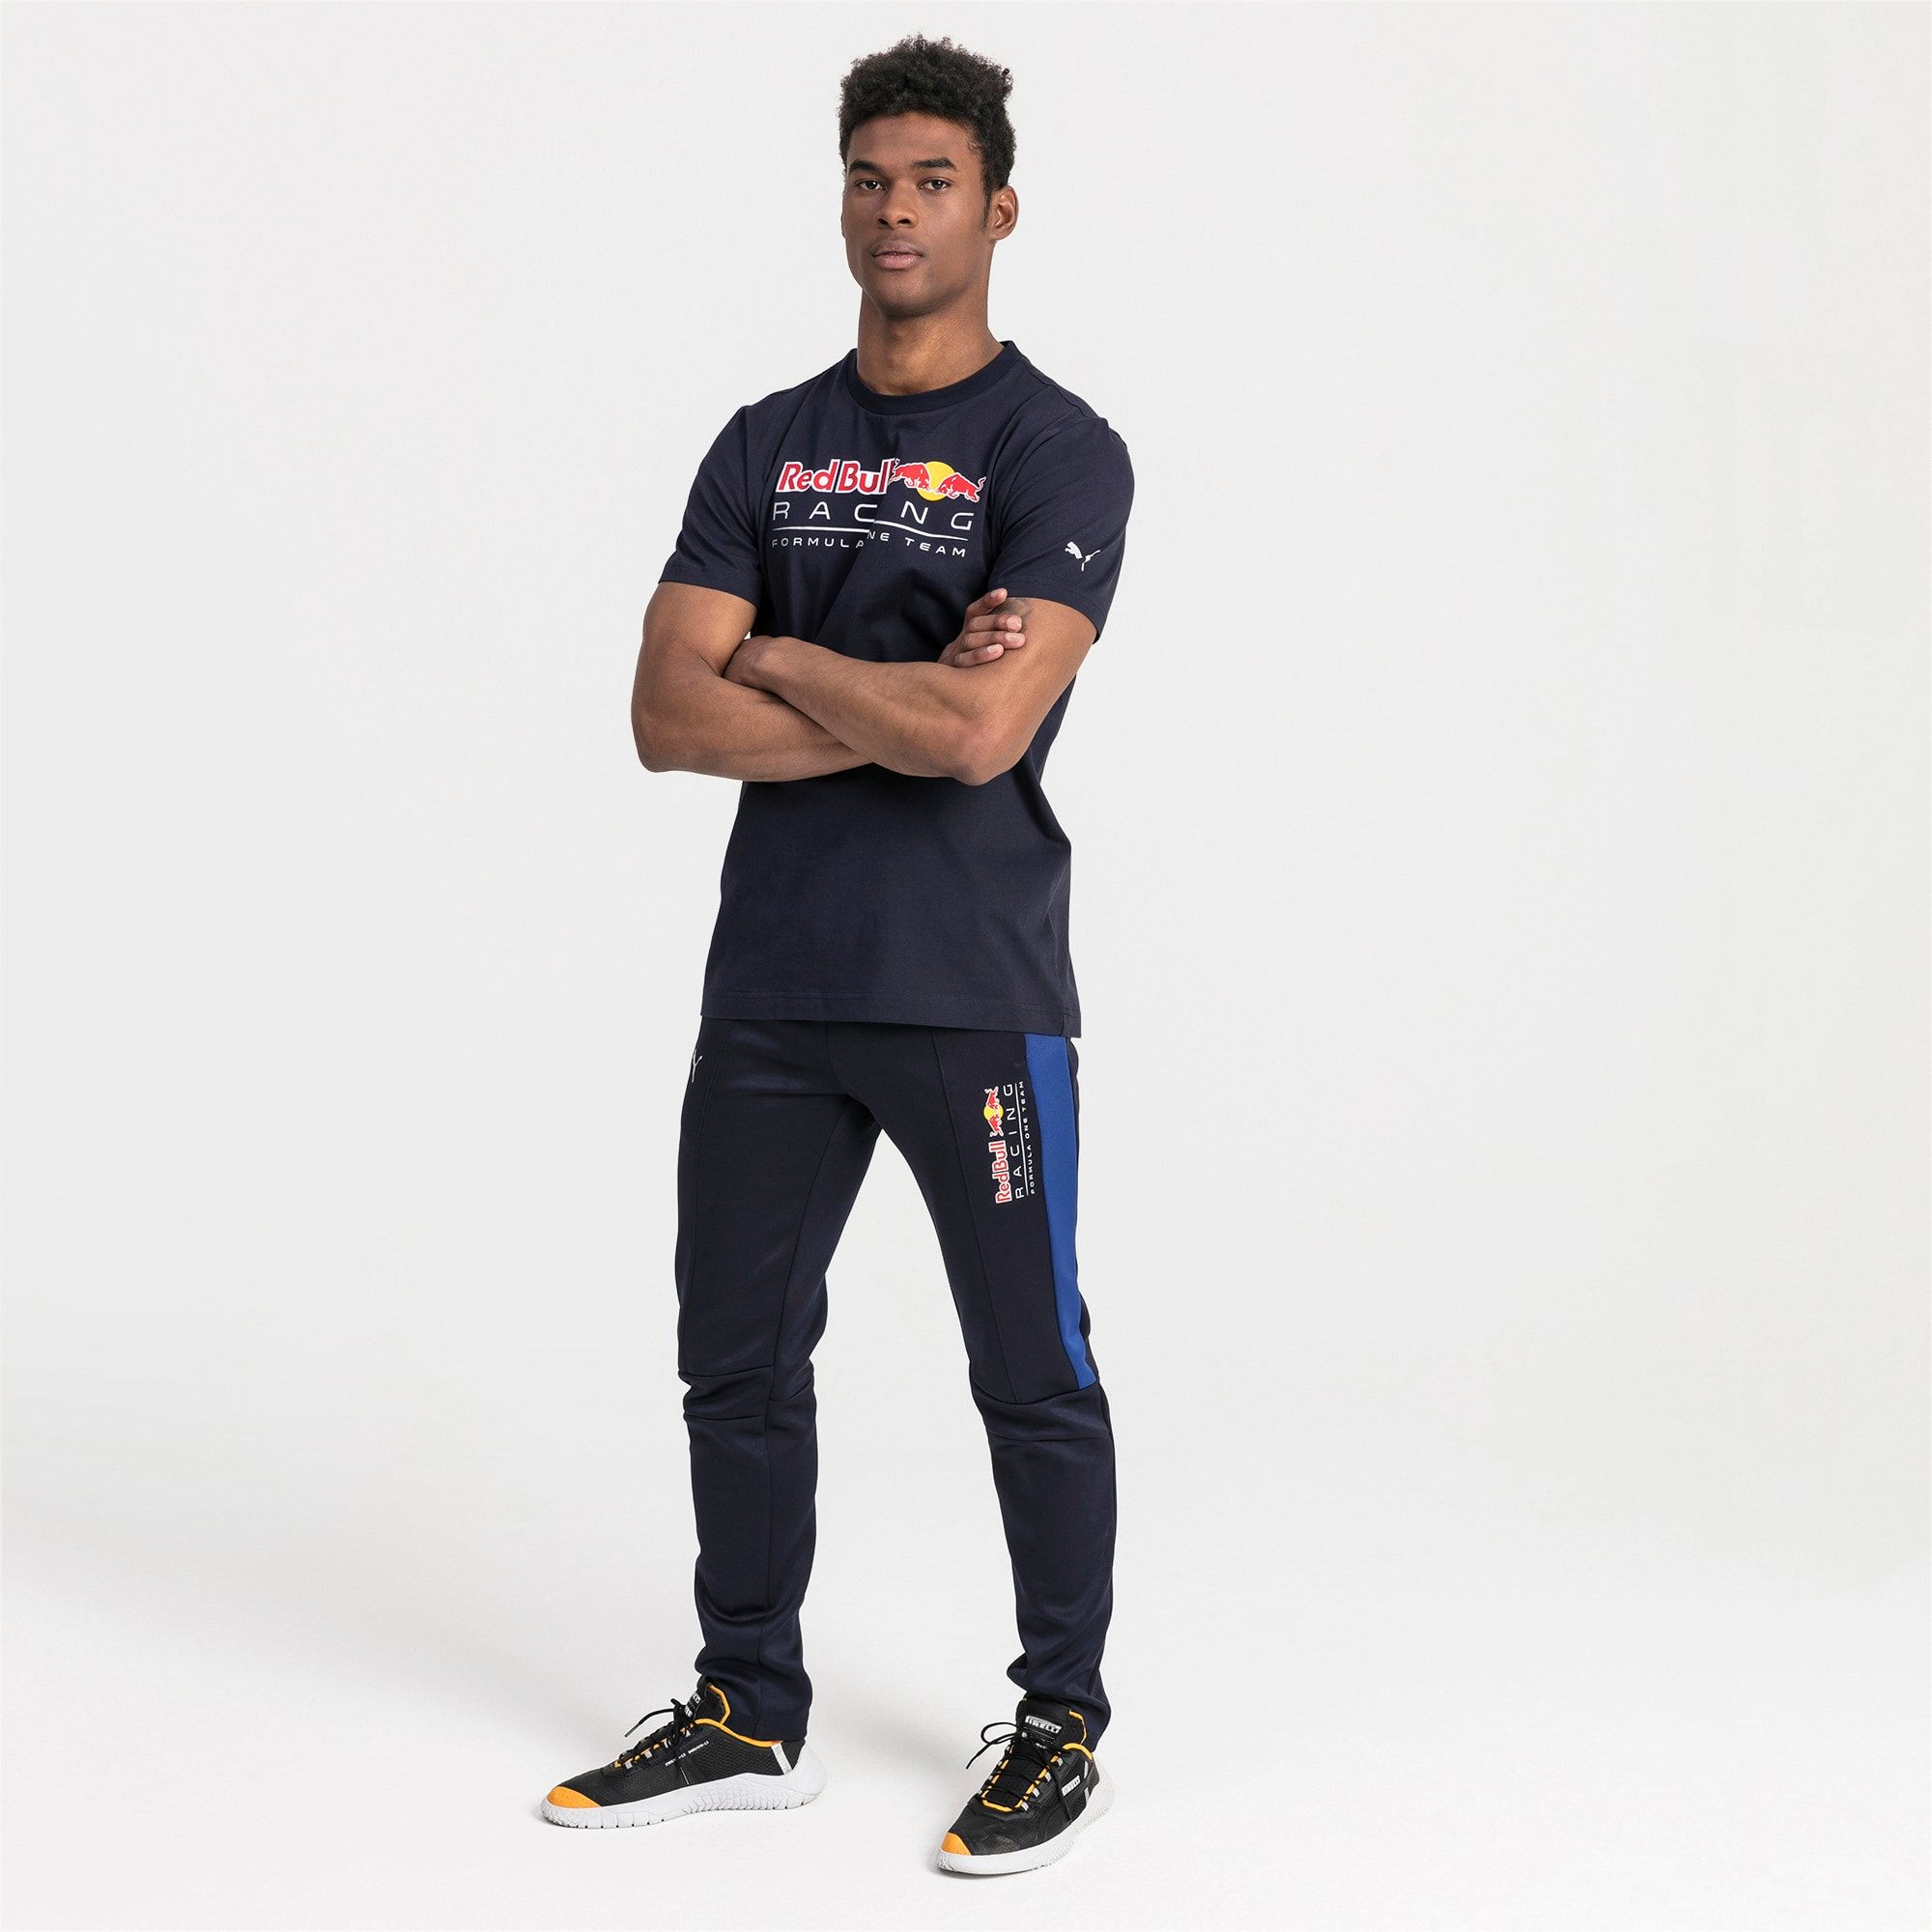 Thumbnail 3 of Red Bull Racing T7 Men's Track Pants, NIGHT SKY, medium